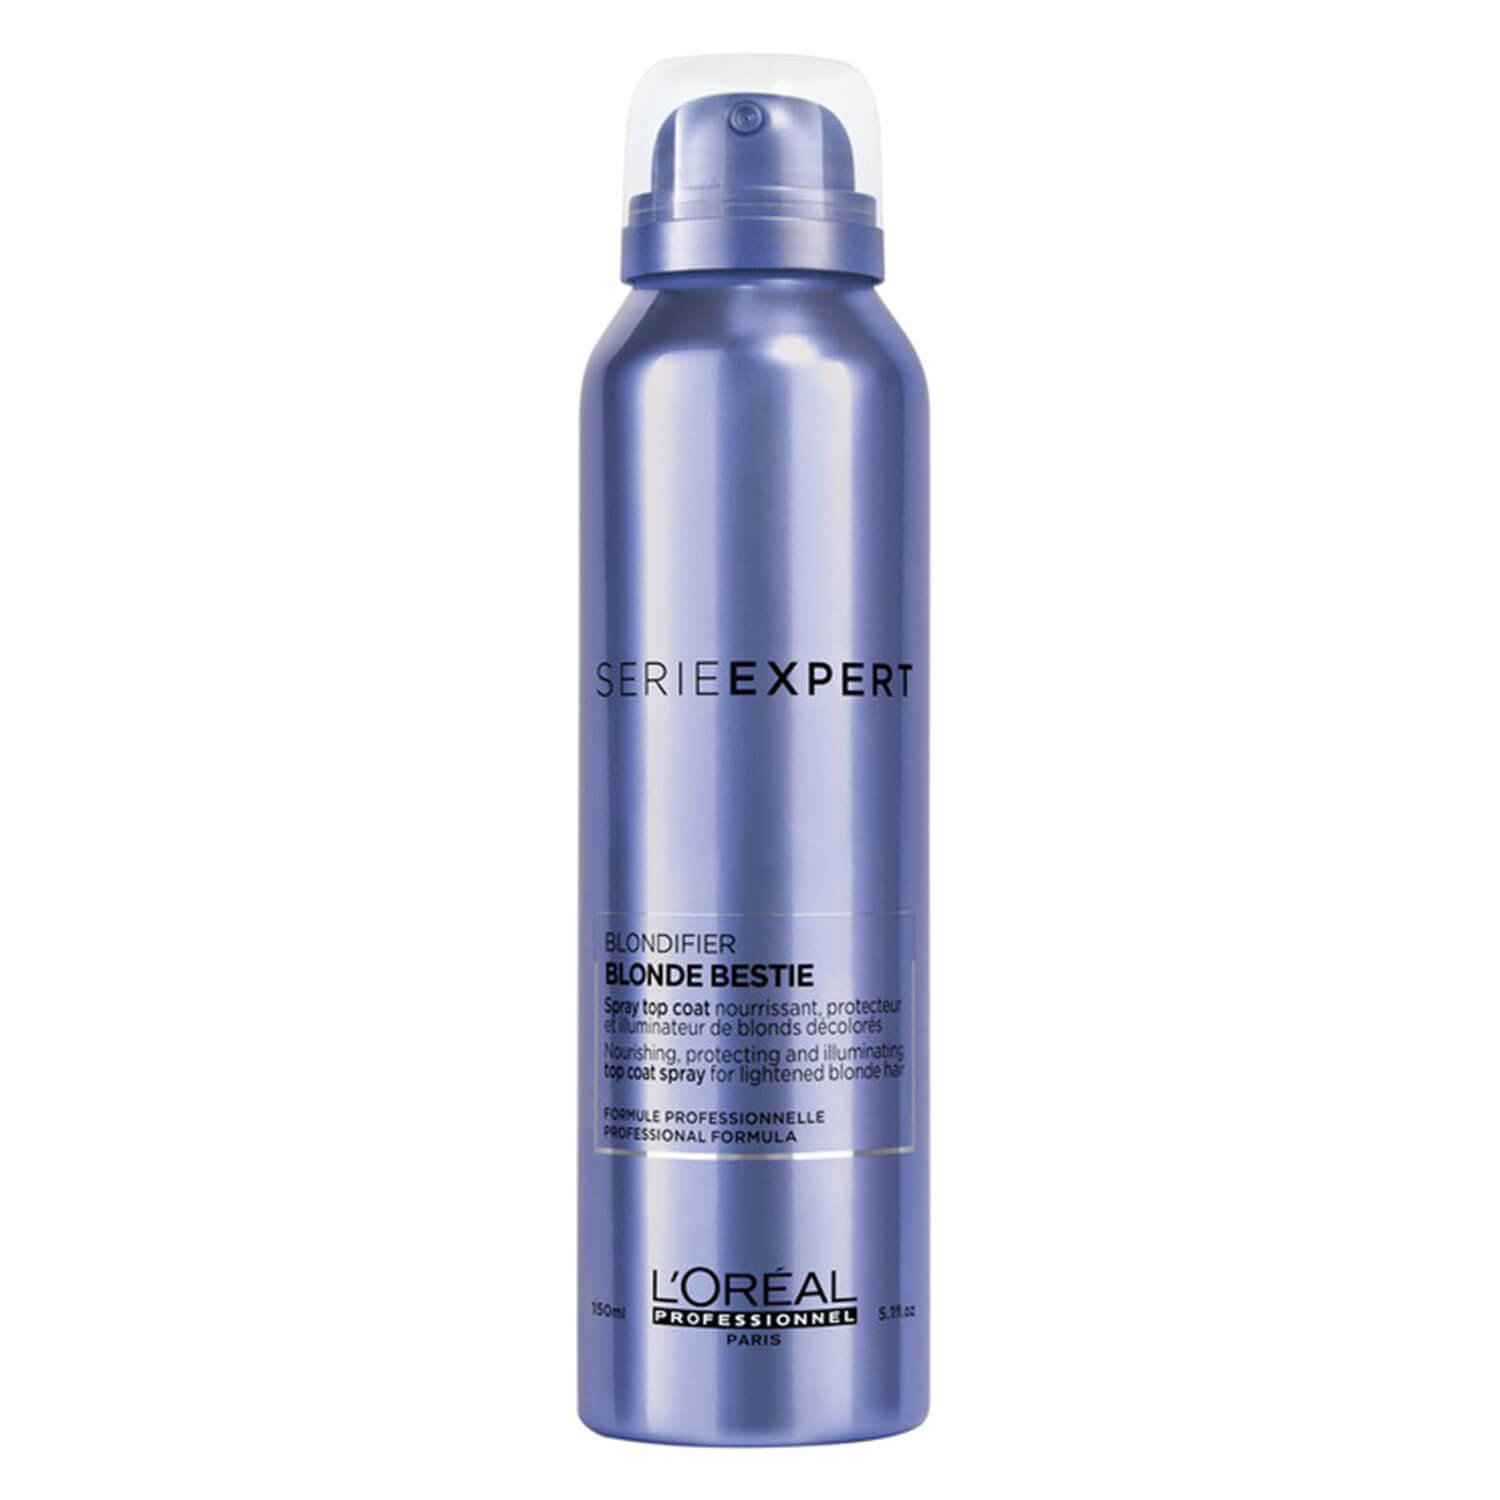 Série Expert Blondifier - Blonde Bestie - 150ml